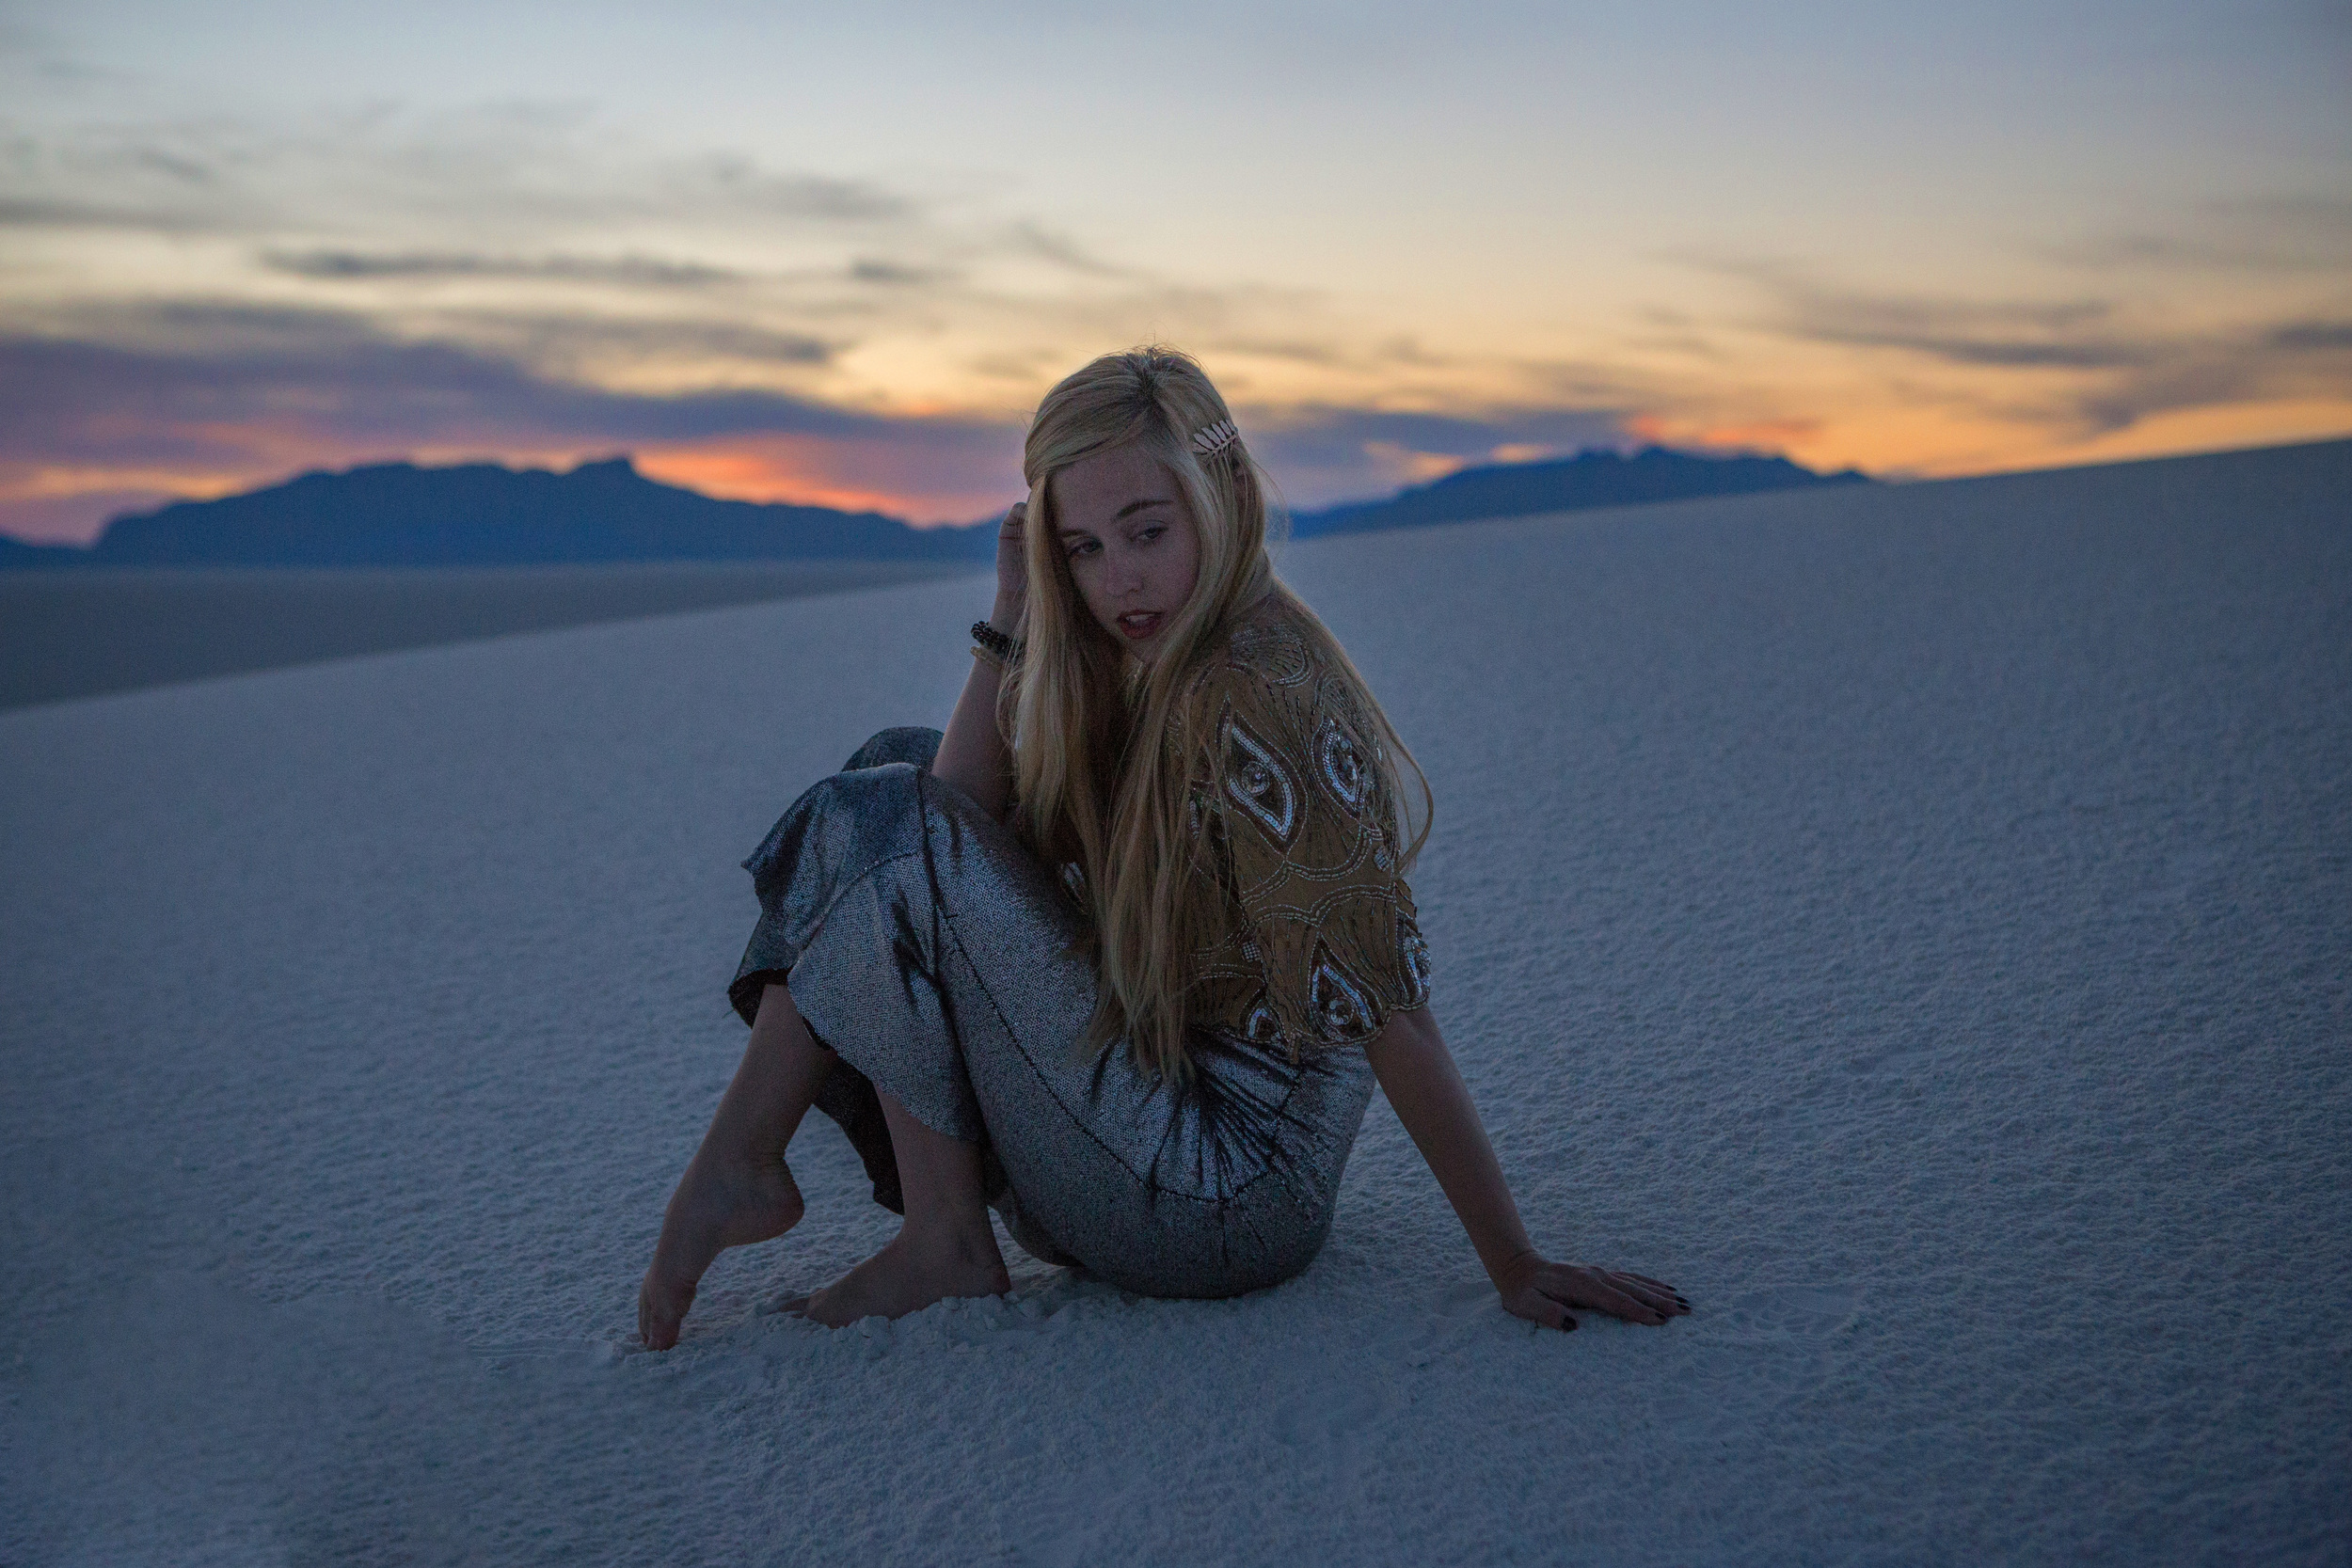 AstroBandit_JordanRose_WhiteSands_Sunset_Sequins_Dancing_Dancer_Fashion_1.jpg